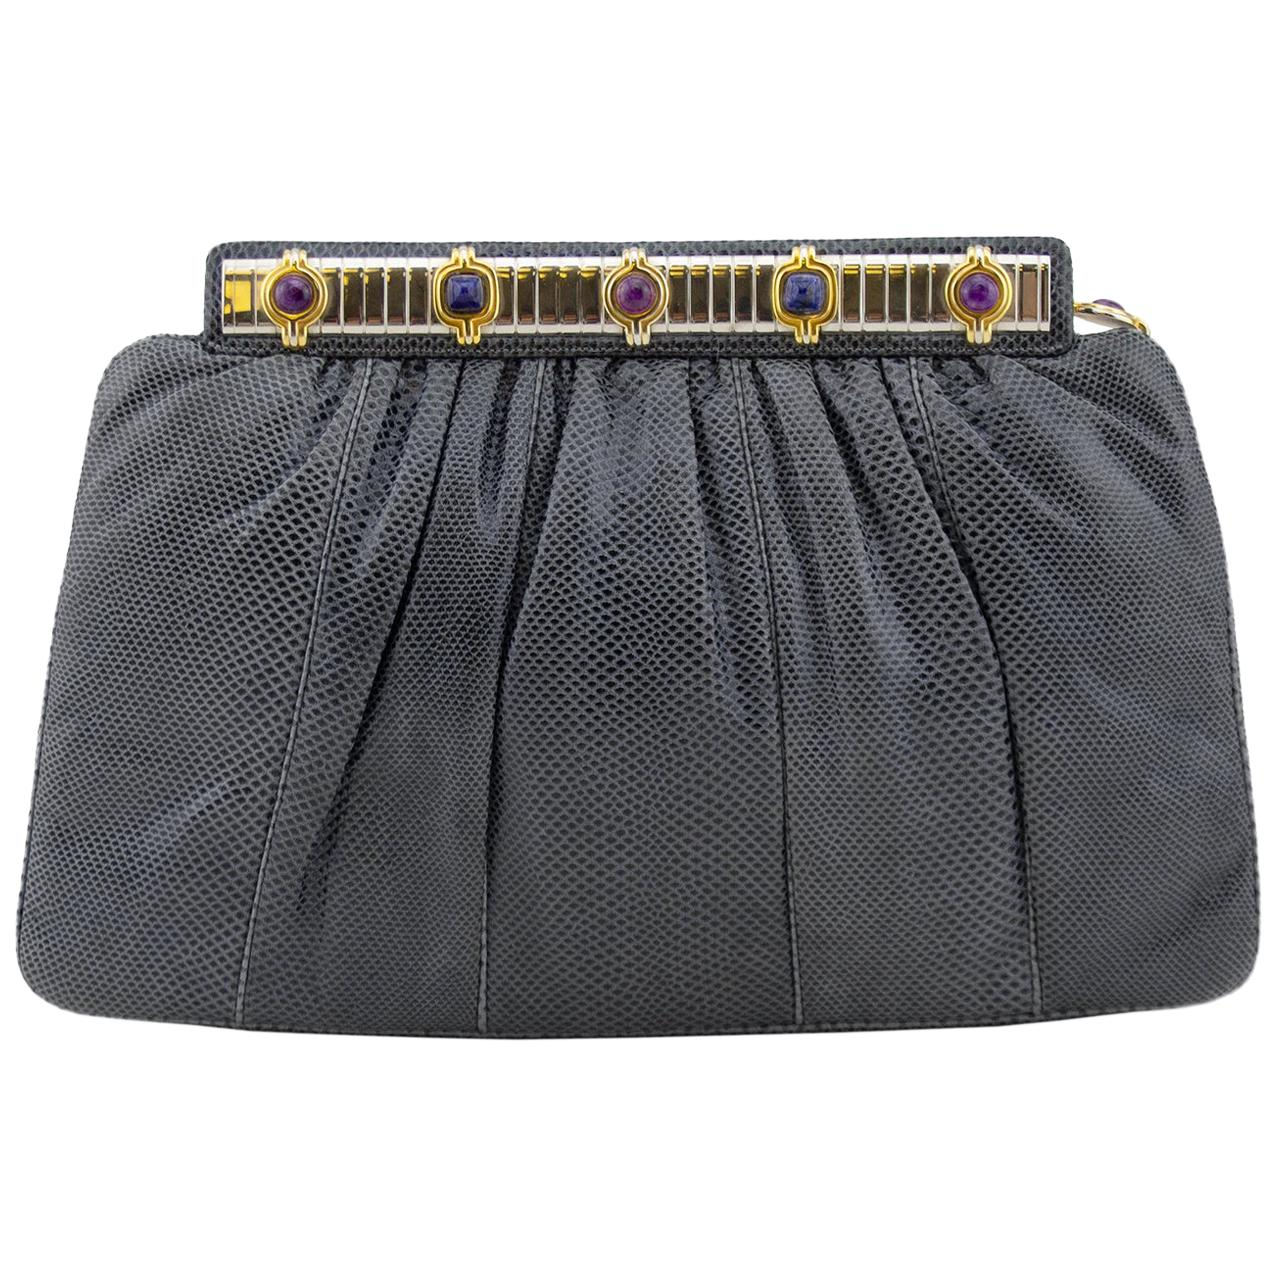 1980s Judith Leiber Grey Patterned Leather Clutch with Art Deco Details